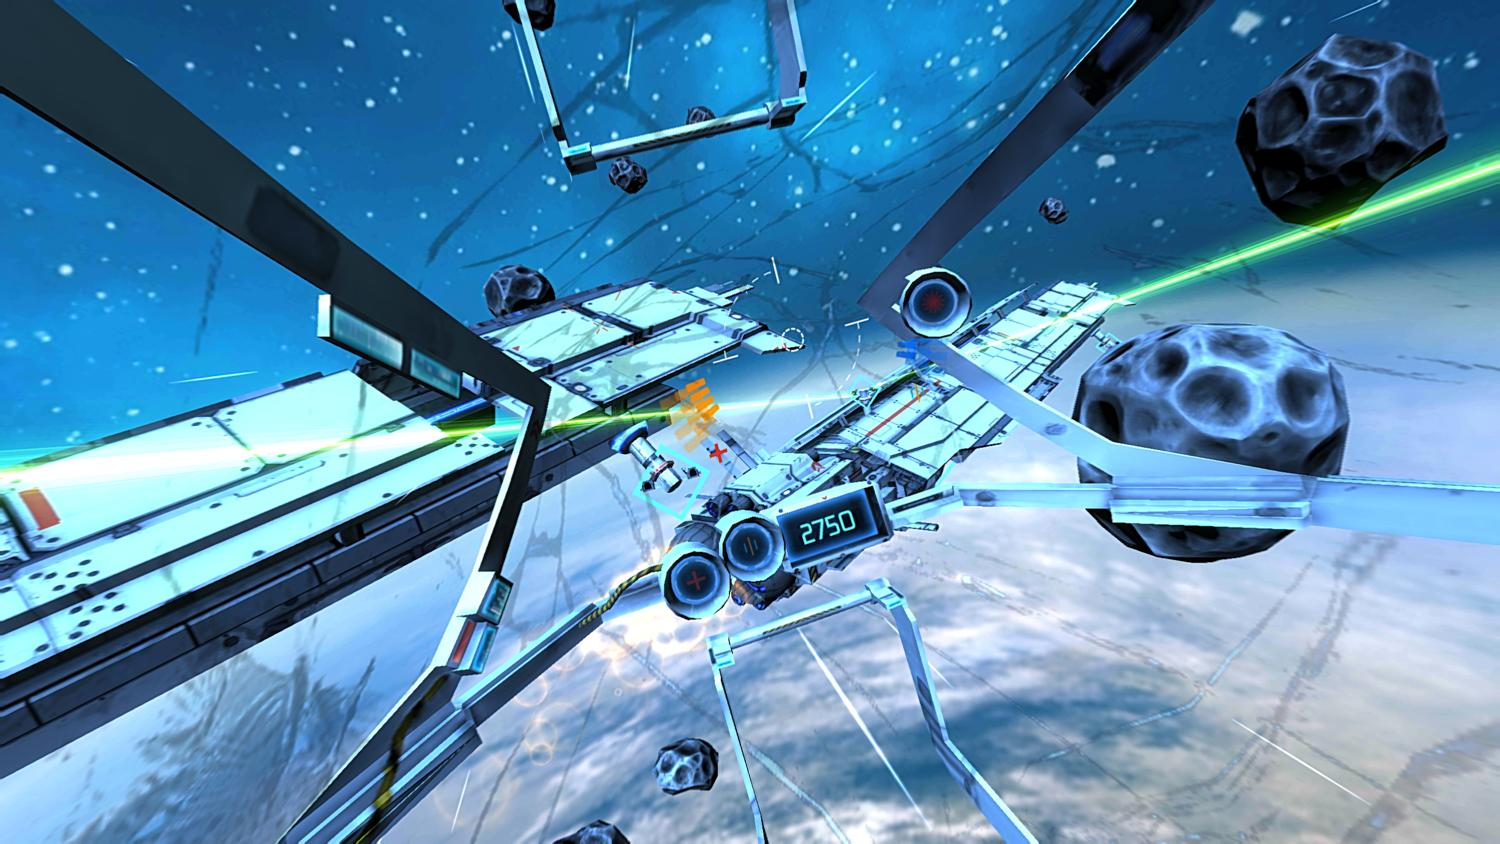 shared virtual space technologies Construct your own space port out of blocks & defend it against relentless enemies to fortify your space colony i'm excited to be part of the development of visp which is specifically designed for virtual reality and not just another well known game system transferred to vr.